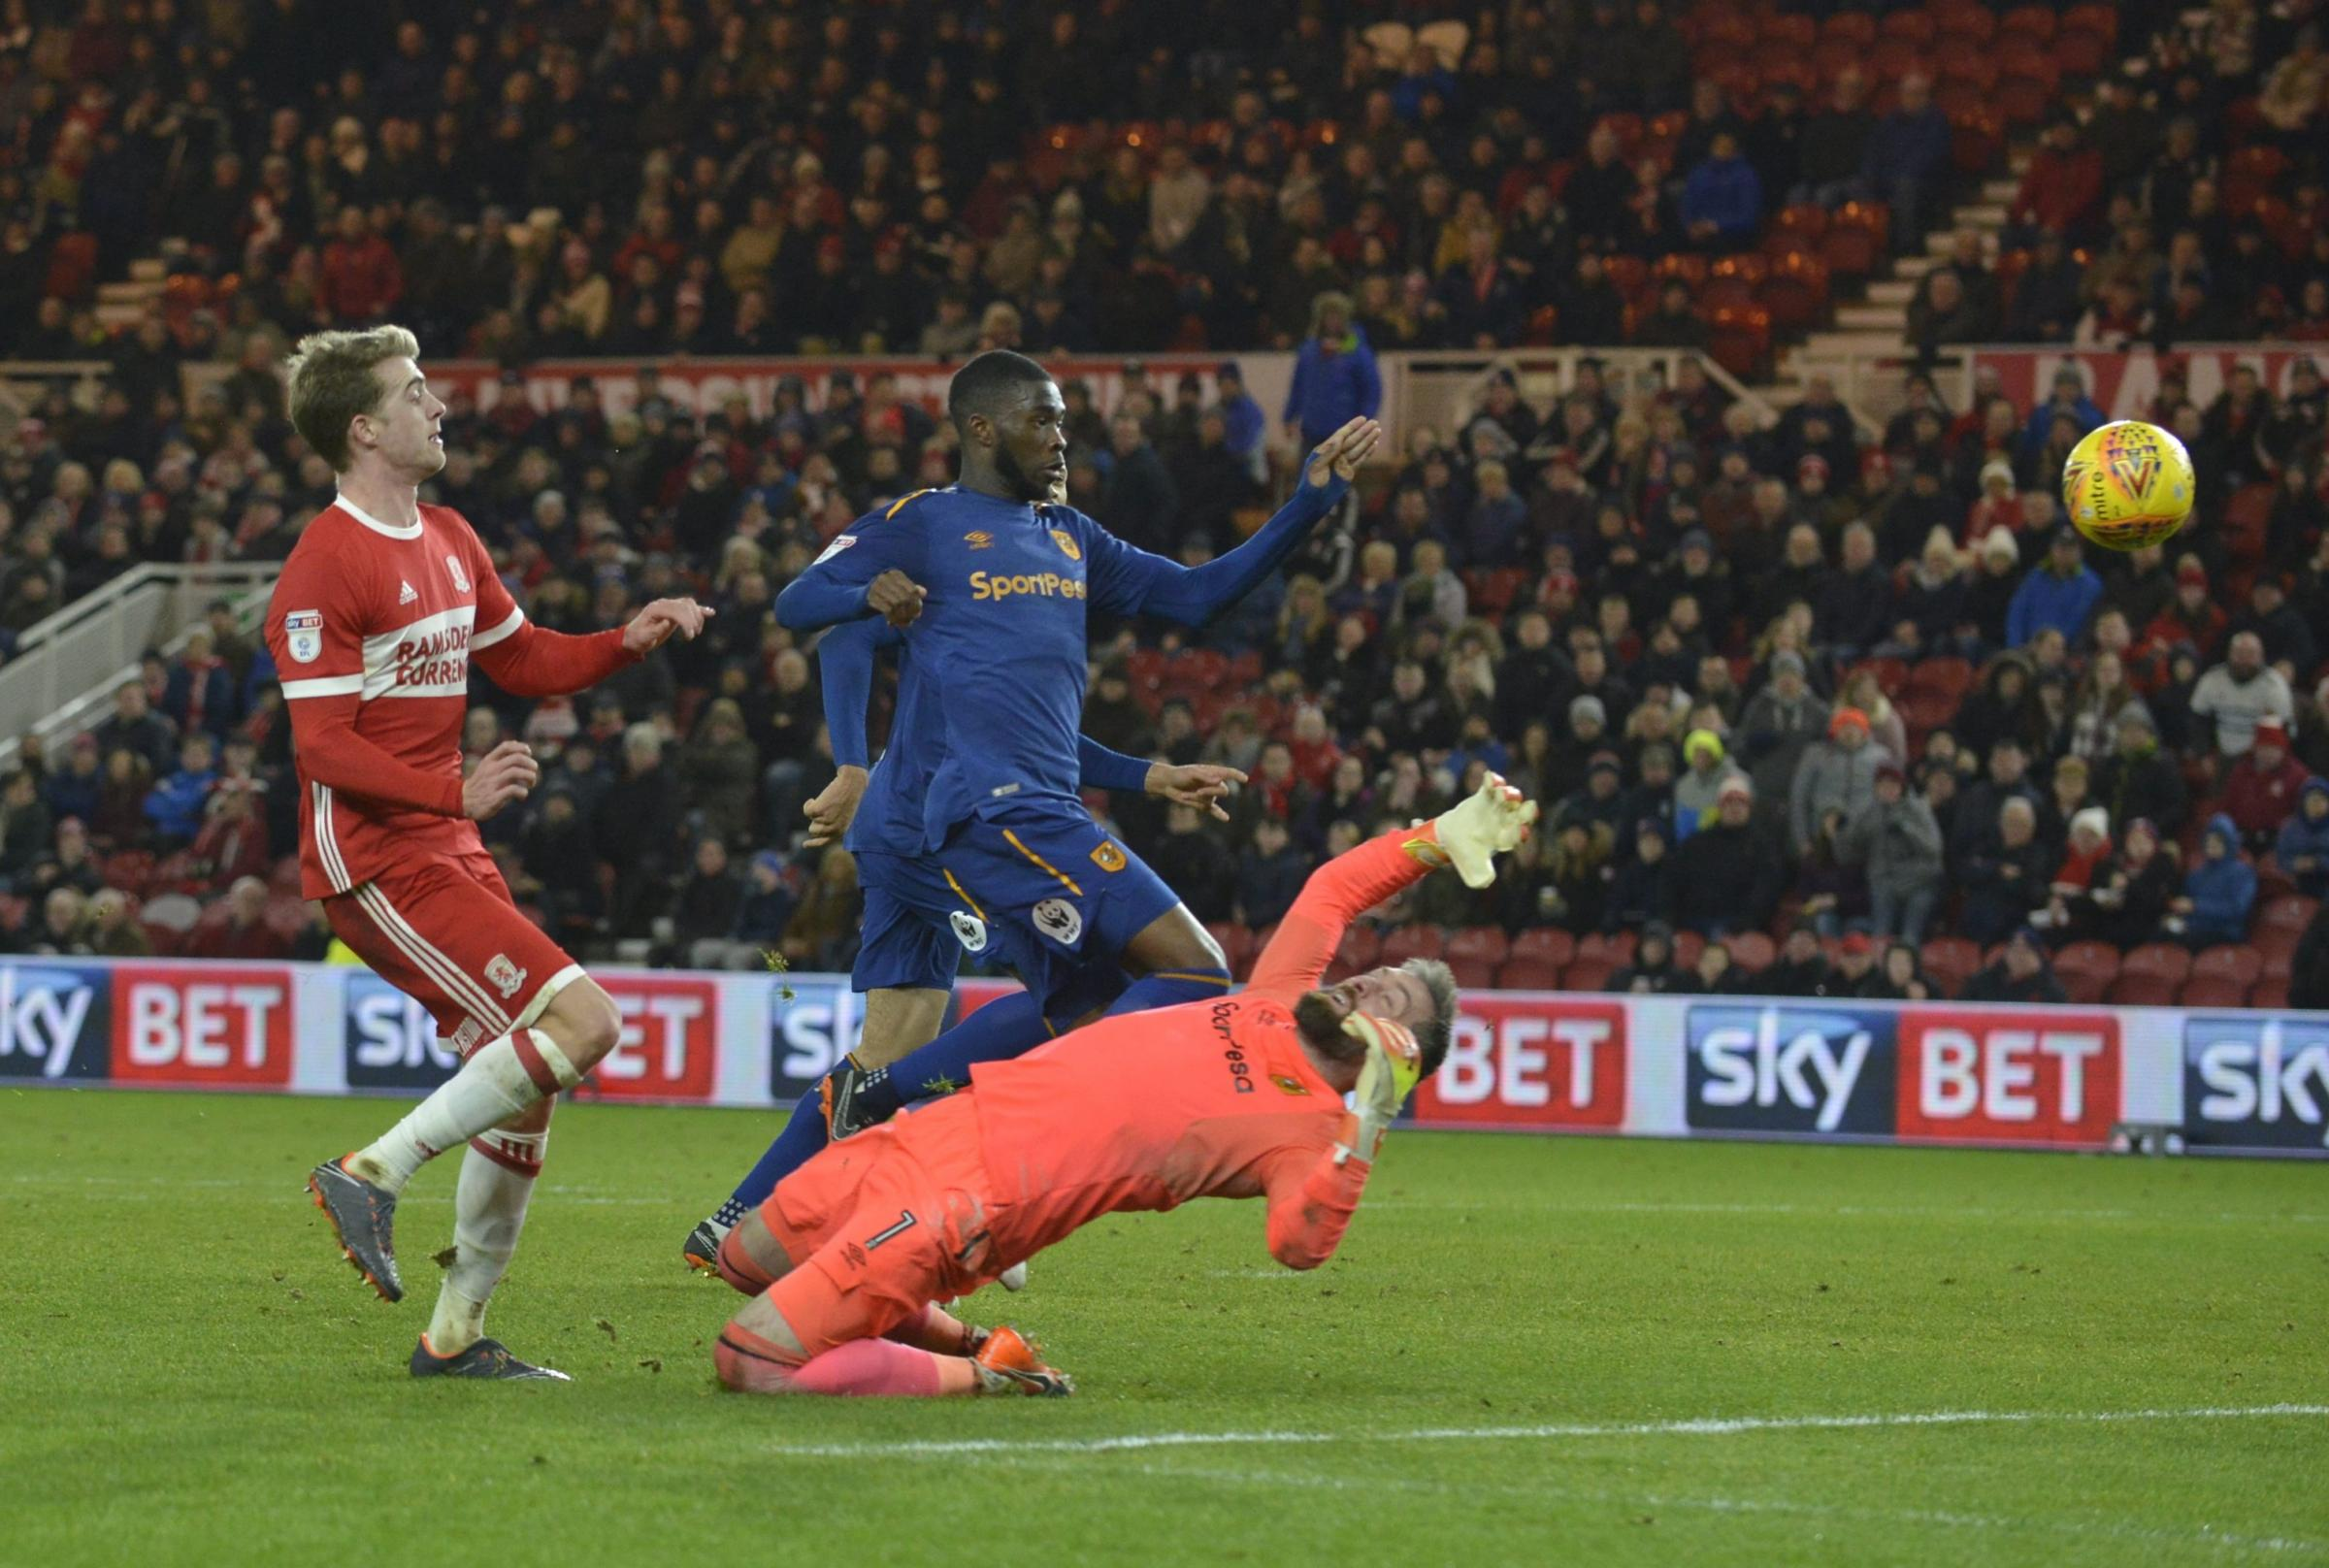 ON TARGET: Patrick Bamford claims Middlesbrough's second goal in their 3-1 win over Hull City (Picture: North News)